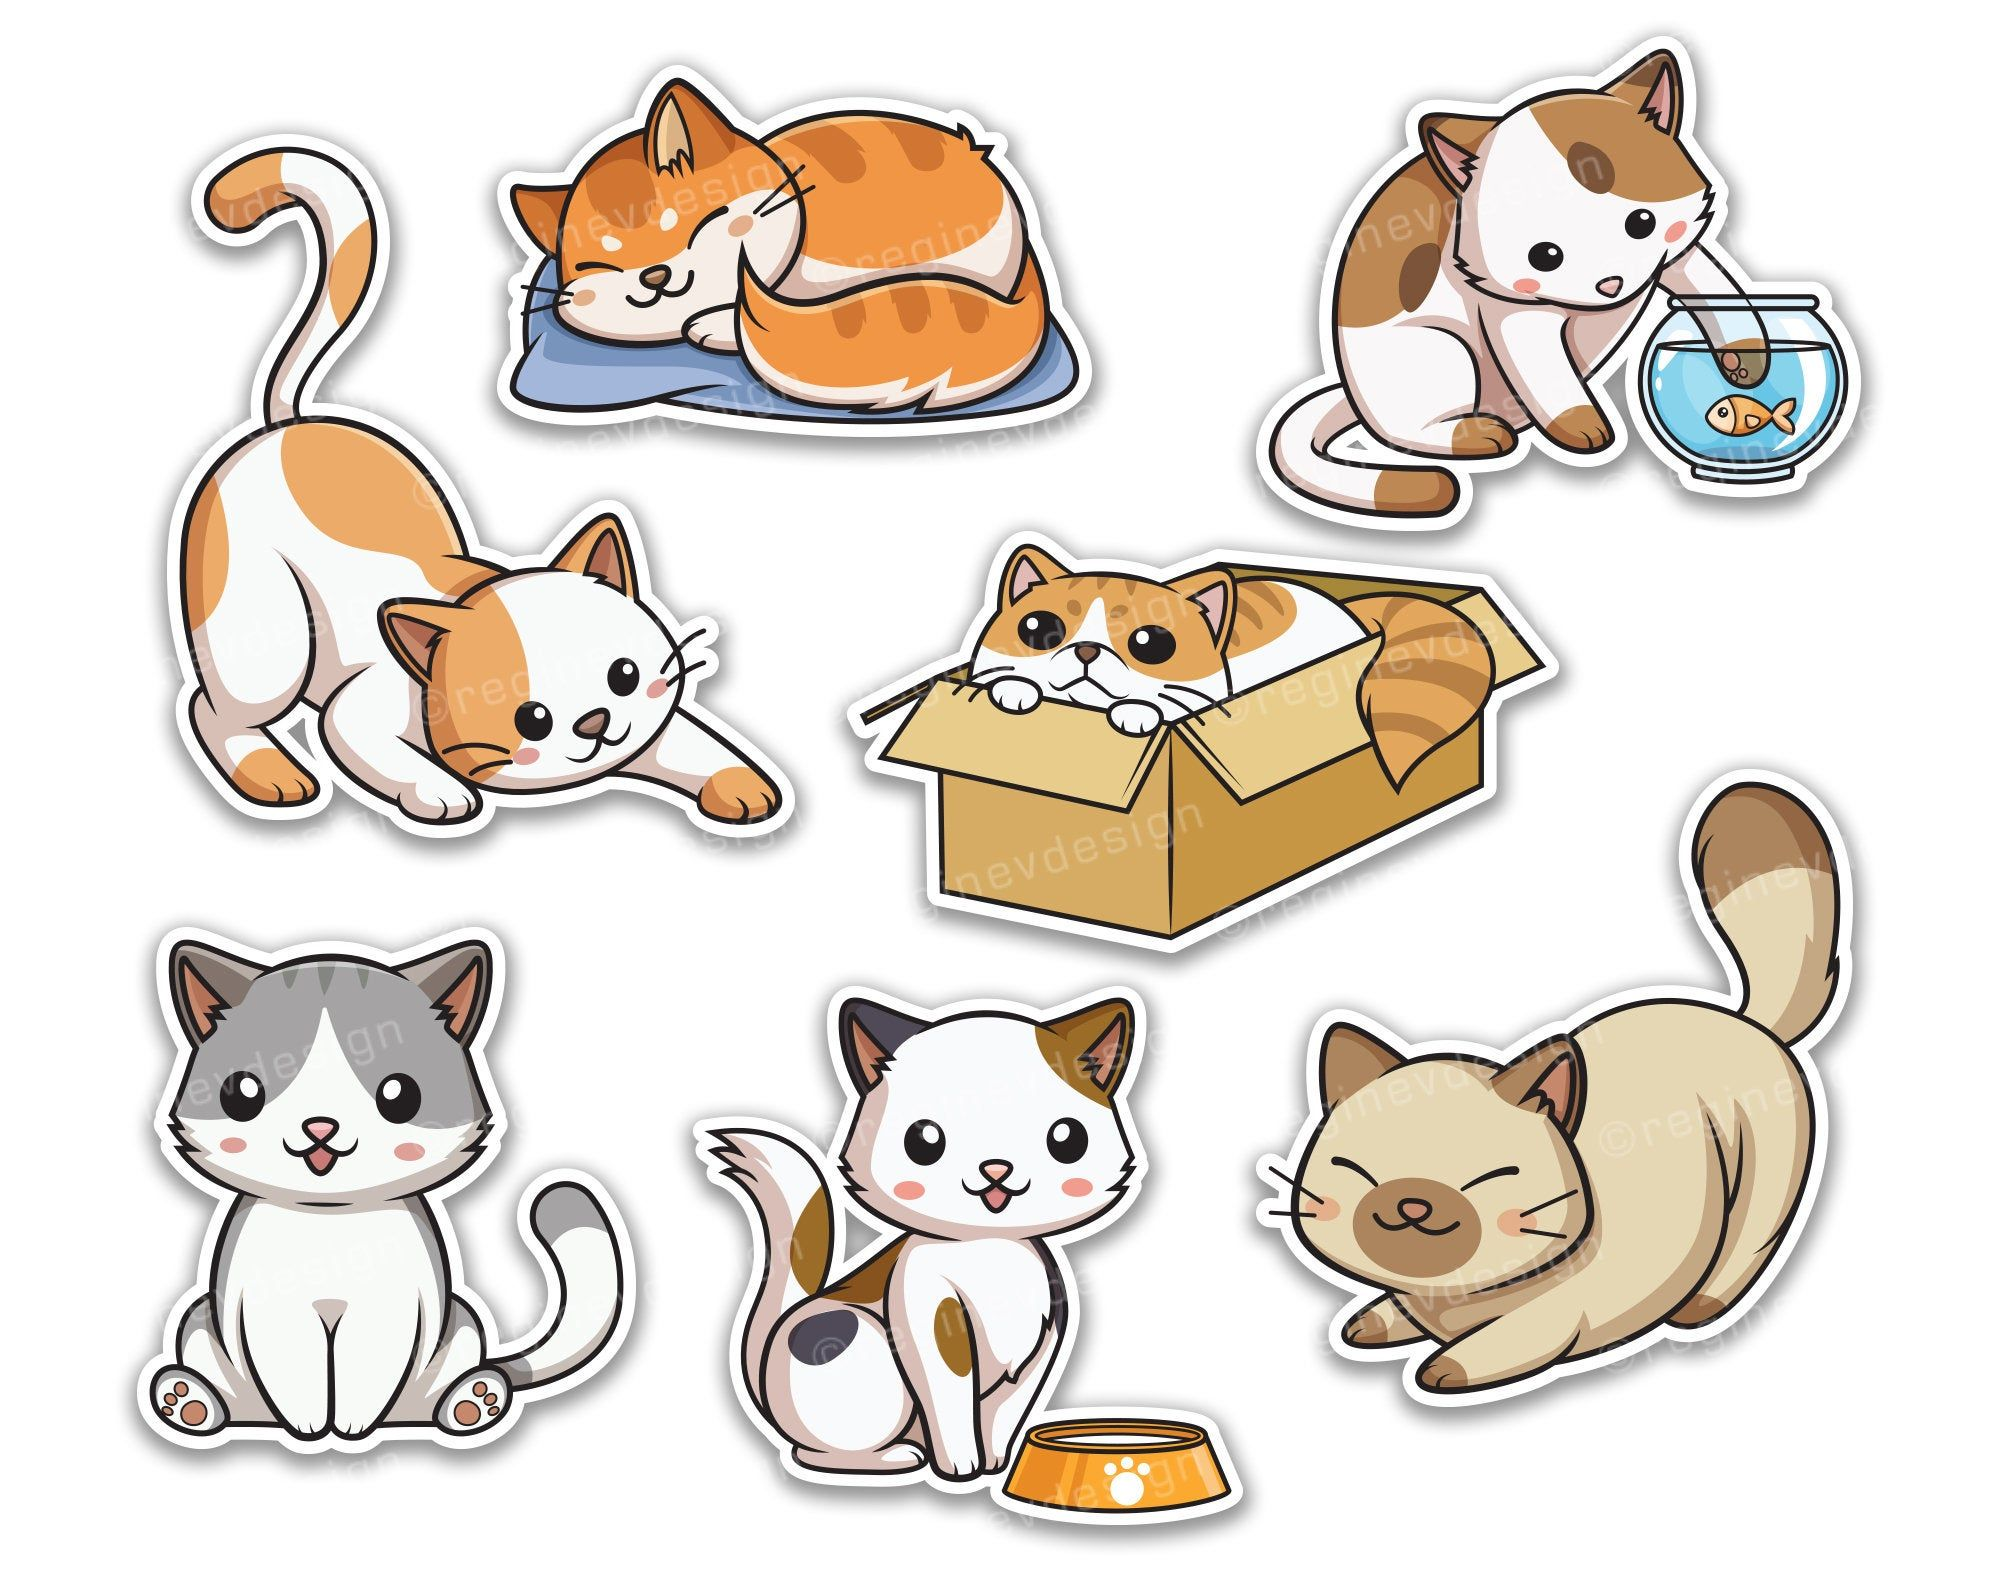 Cute Cat Clipart, Kitten, Sticker, Pussycat, Vector, Kawaii